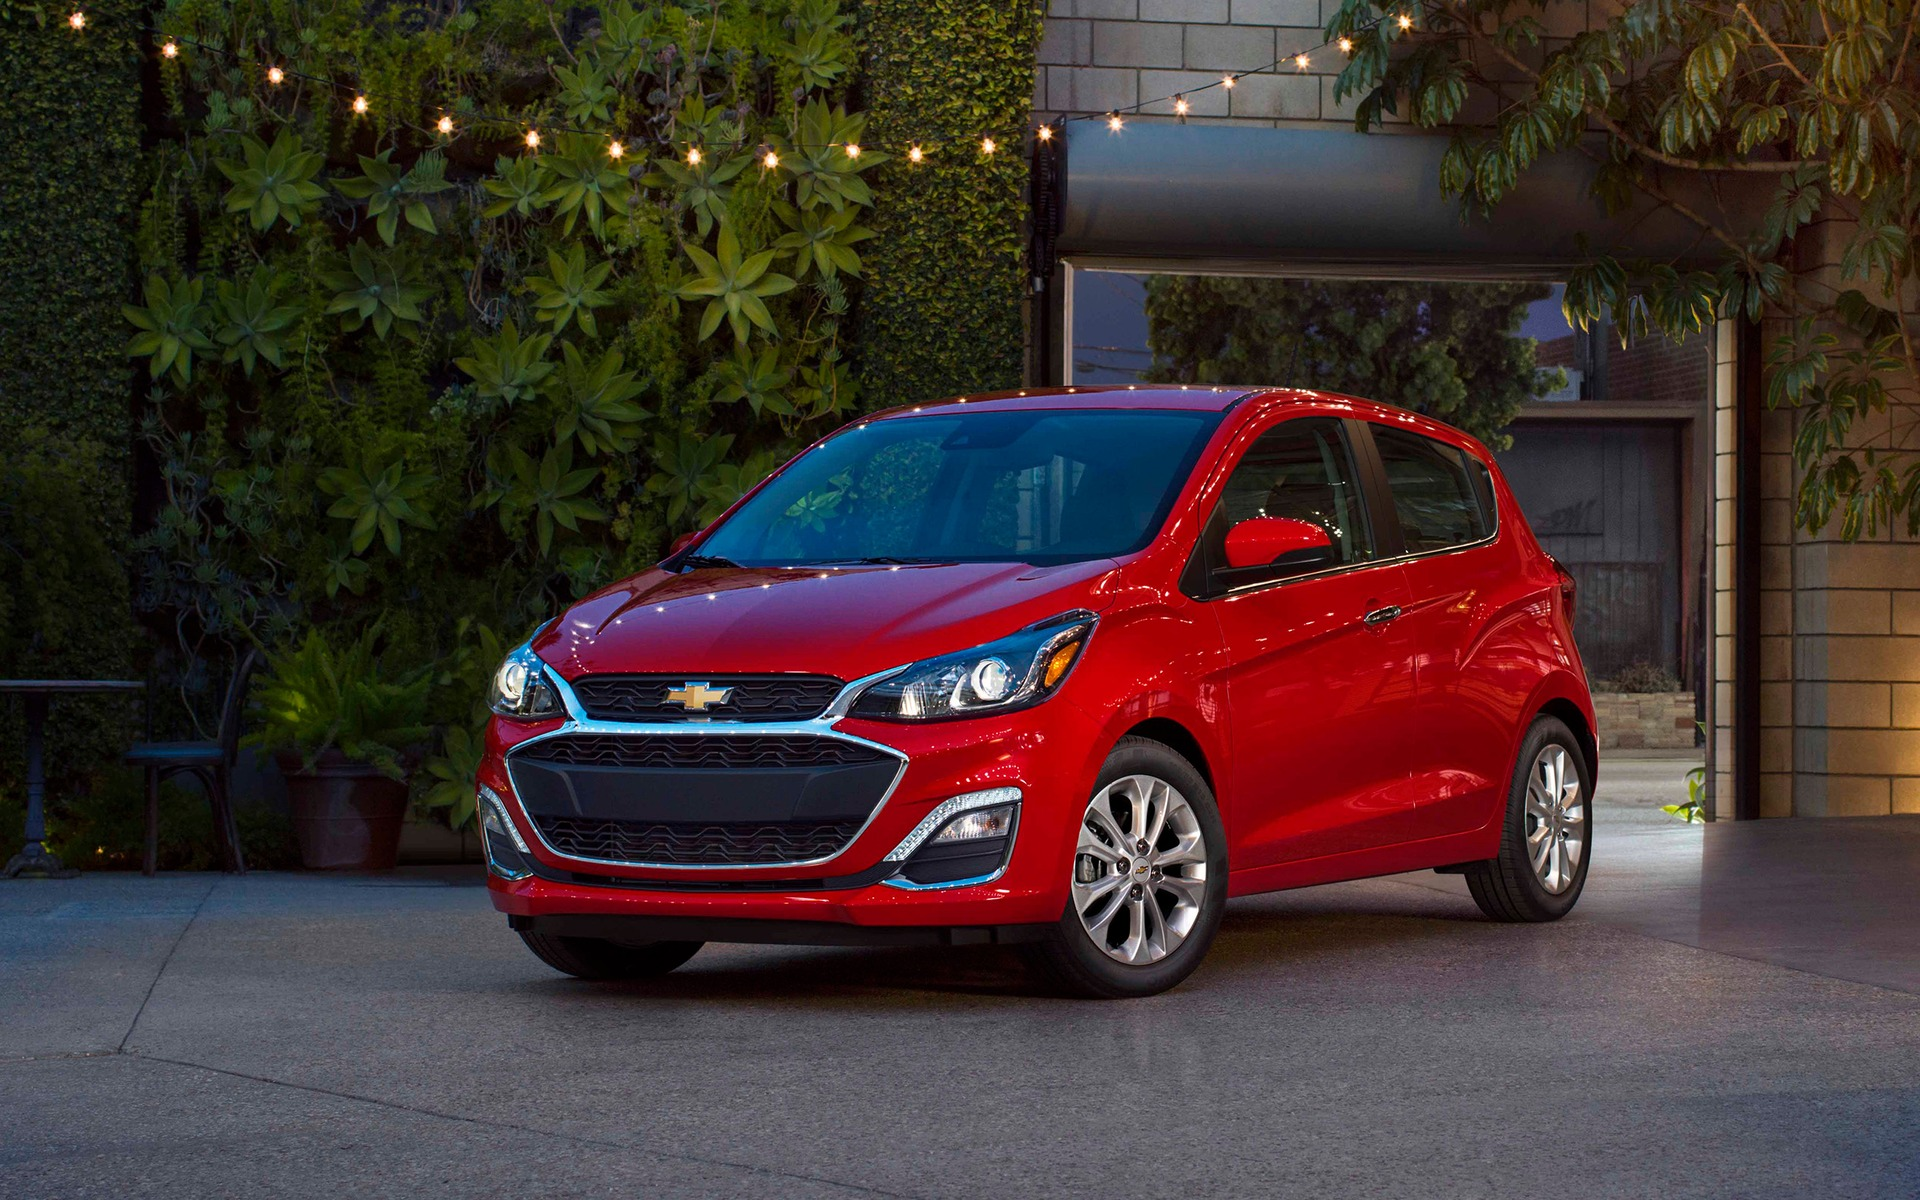 2019 Chevrolet Spark: $9,995 before freight and delivery charges